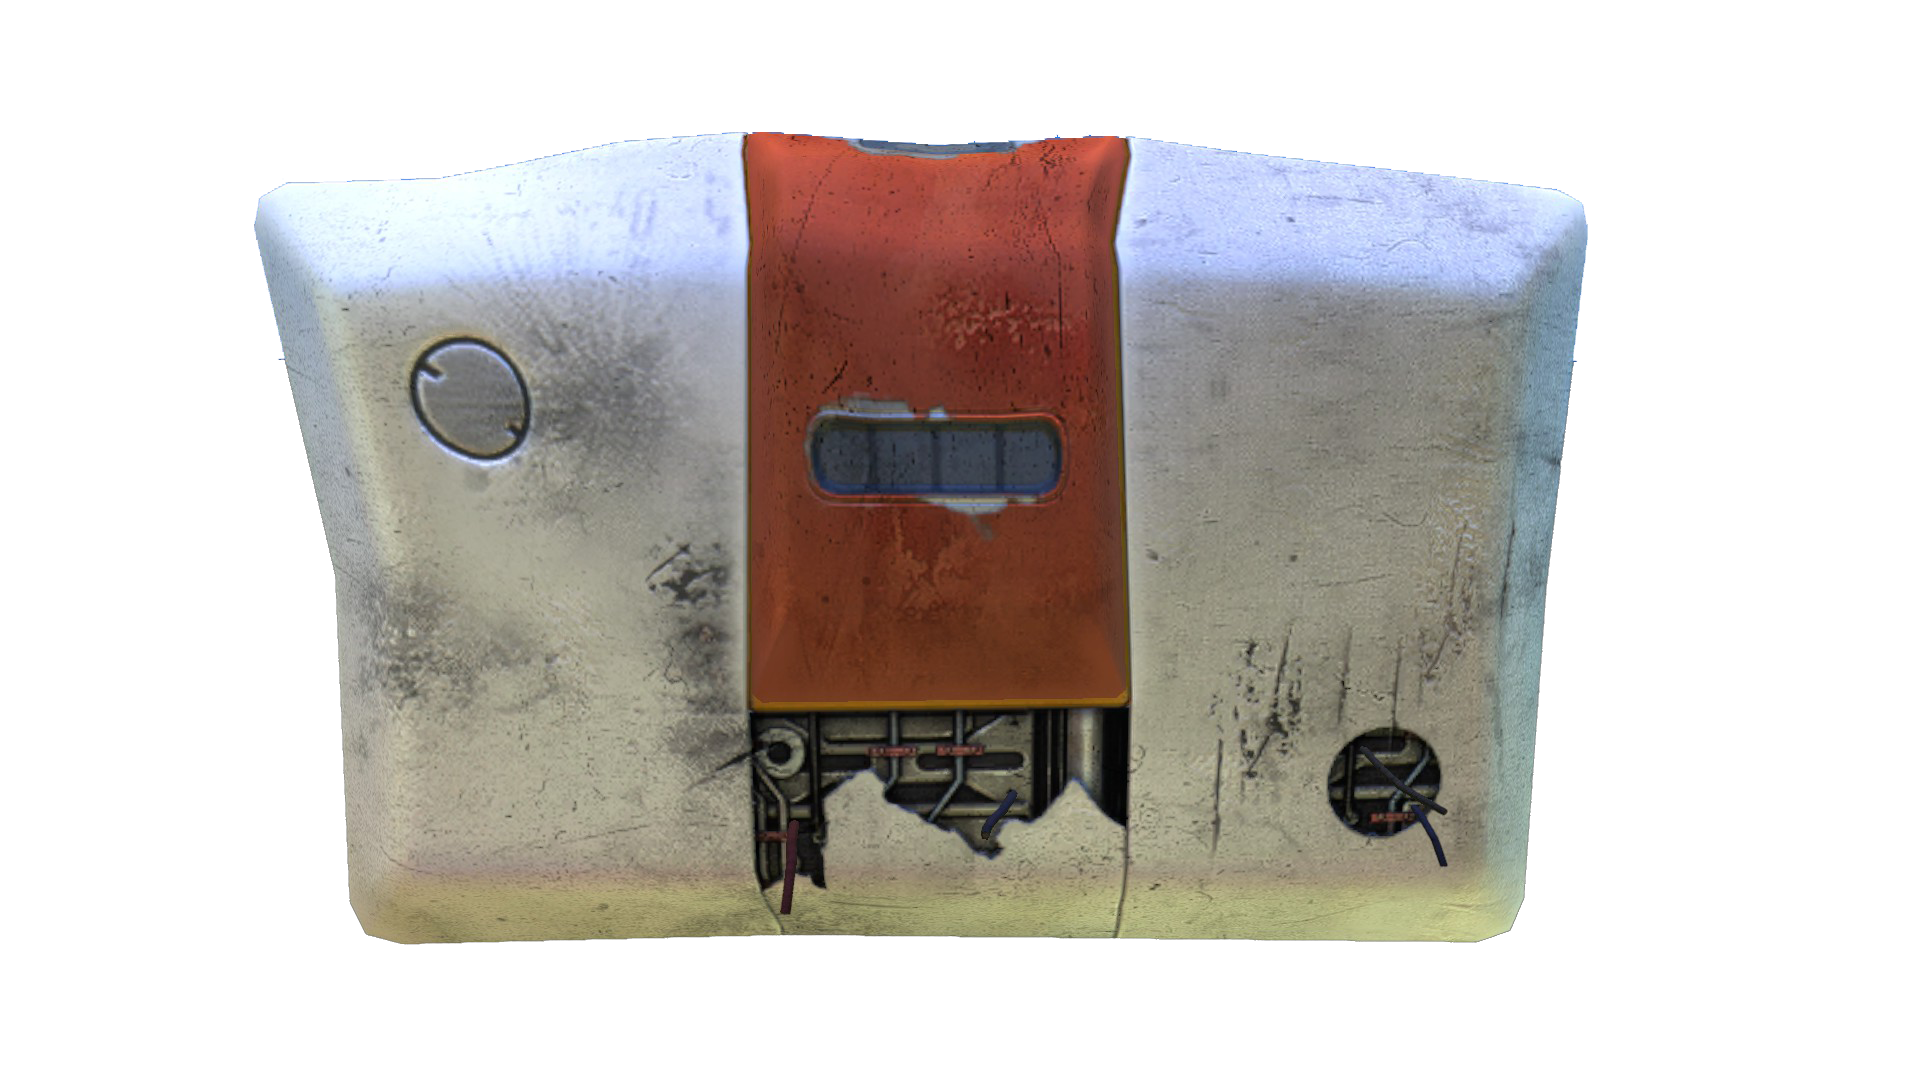 Mobile vehicle bay subnautica wiki fandom powered by wikia 1 2 3 4 5 malvernweather Image collections